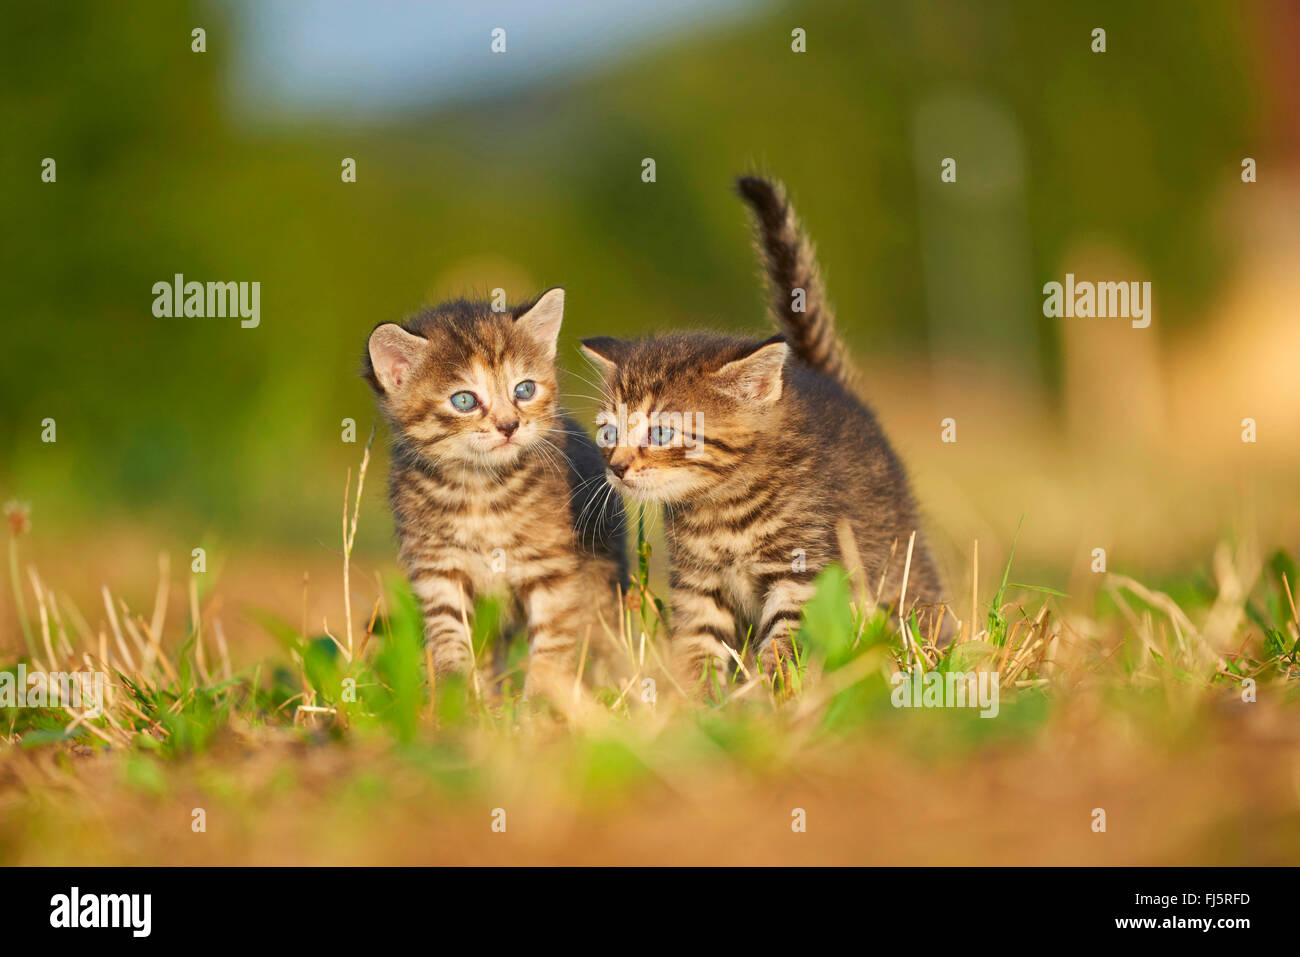 domestic cat, house cat (Felis silvestris f. catus), two five weeks old kitten standing together in a meadow, Germany - Stock Image